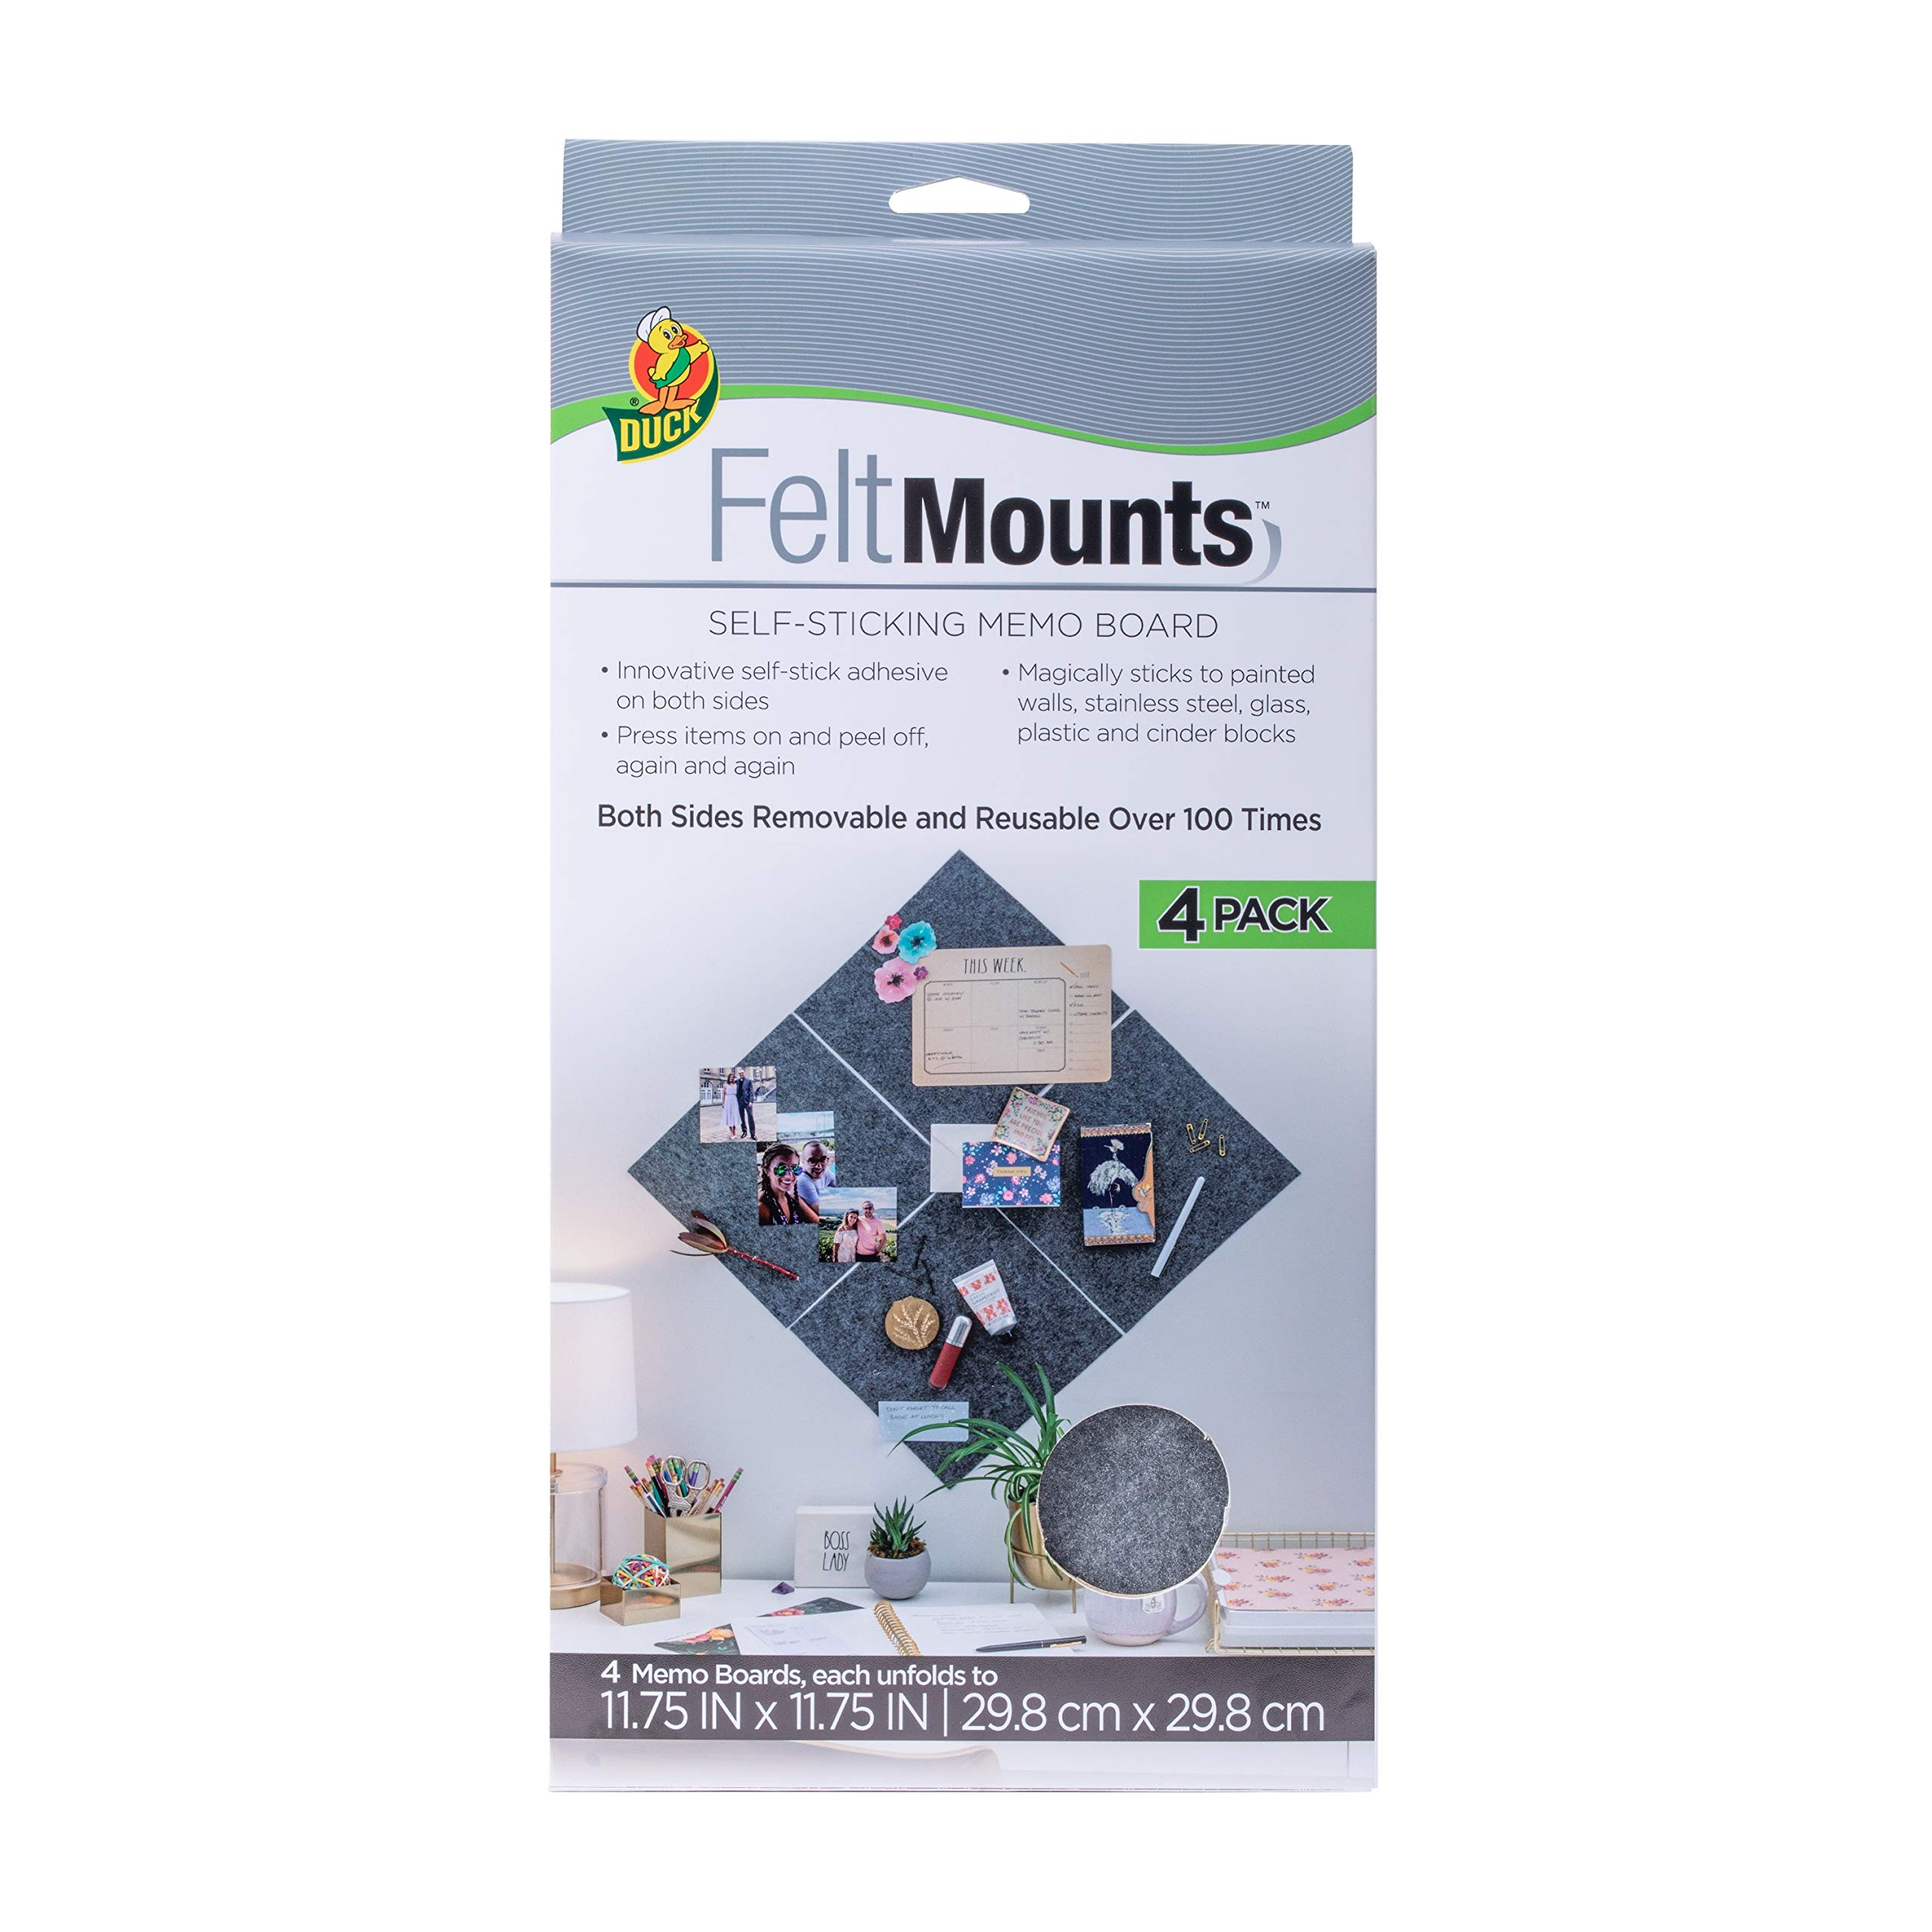 Duck Brand FeltMounts Sticky Memo Board, Reusable, Charcoal Gray, 11.75 x 11.75 Inches, 4-Pack by Duck Brand